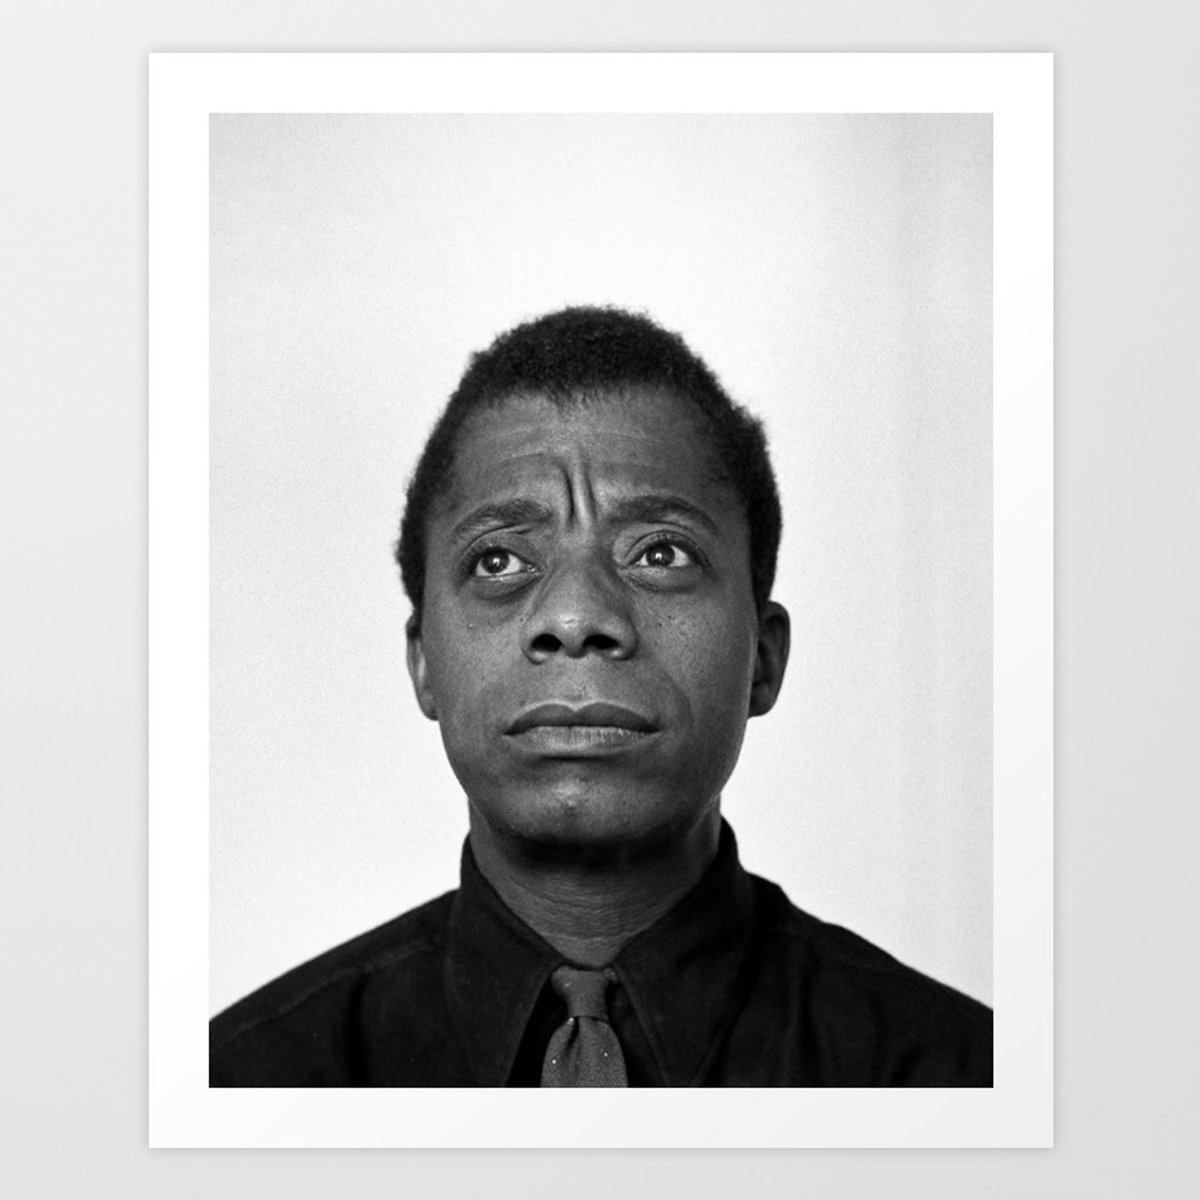 """It is certain, in any case, that ignorance, allied with power, is the most ferocious enemy justice can have."" ~James Baldwin"